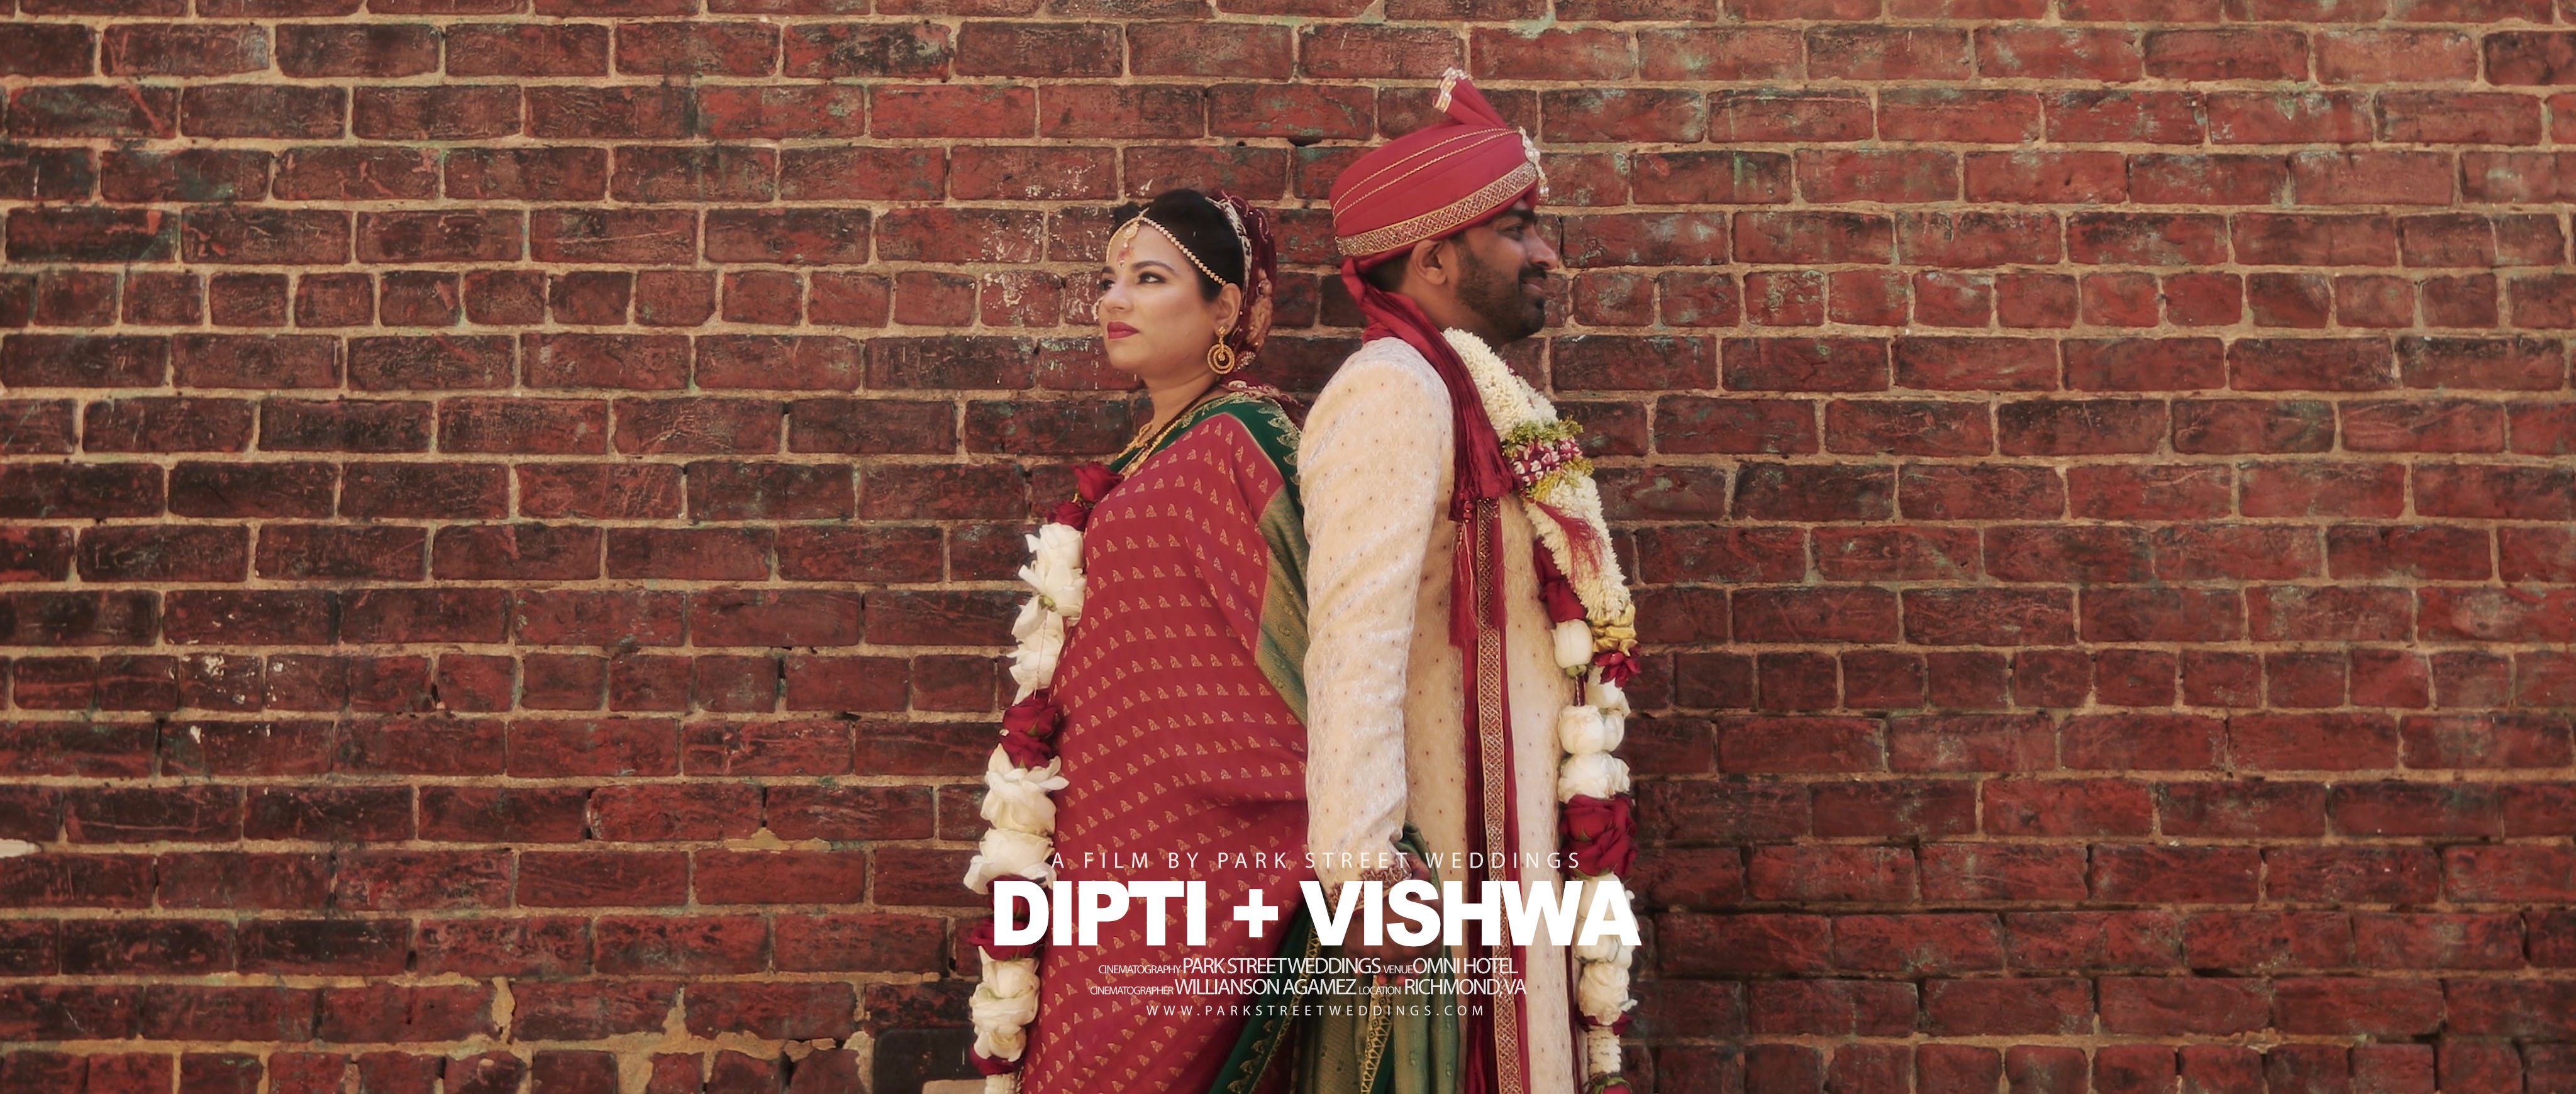 Dipti + Vishwa | Richmond, Virginia | Omni Hotel